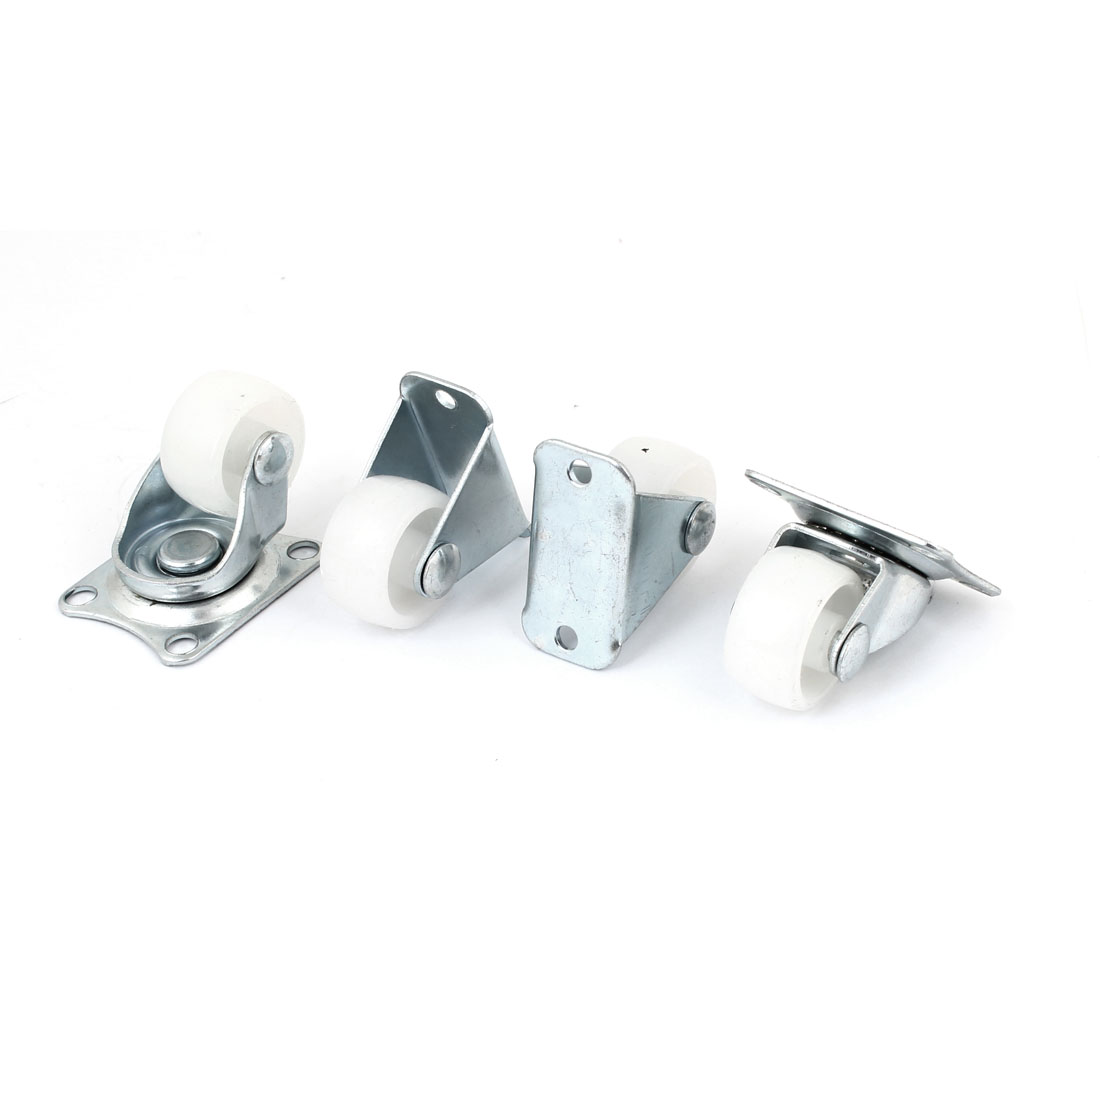 "4 Pcs 1"" Plastic Wheel Rectangle Top Plate Fixed Swivel Caster Set"